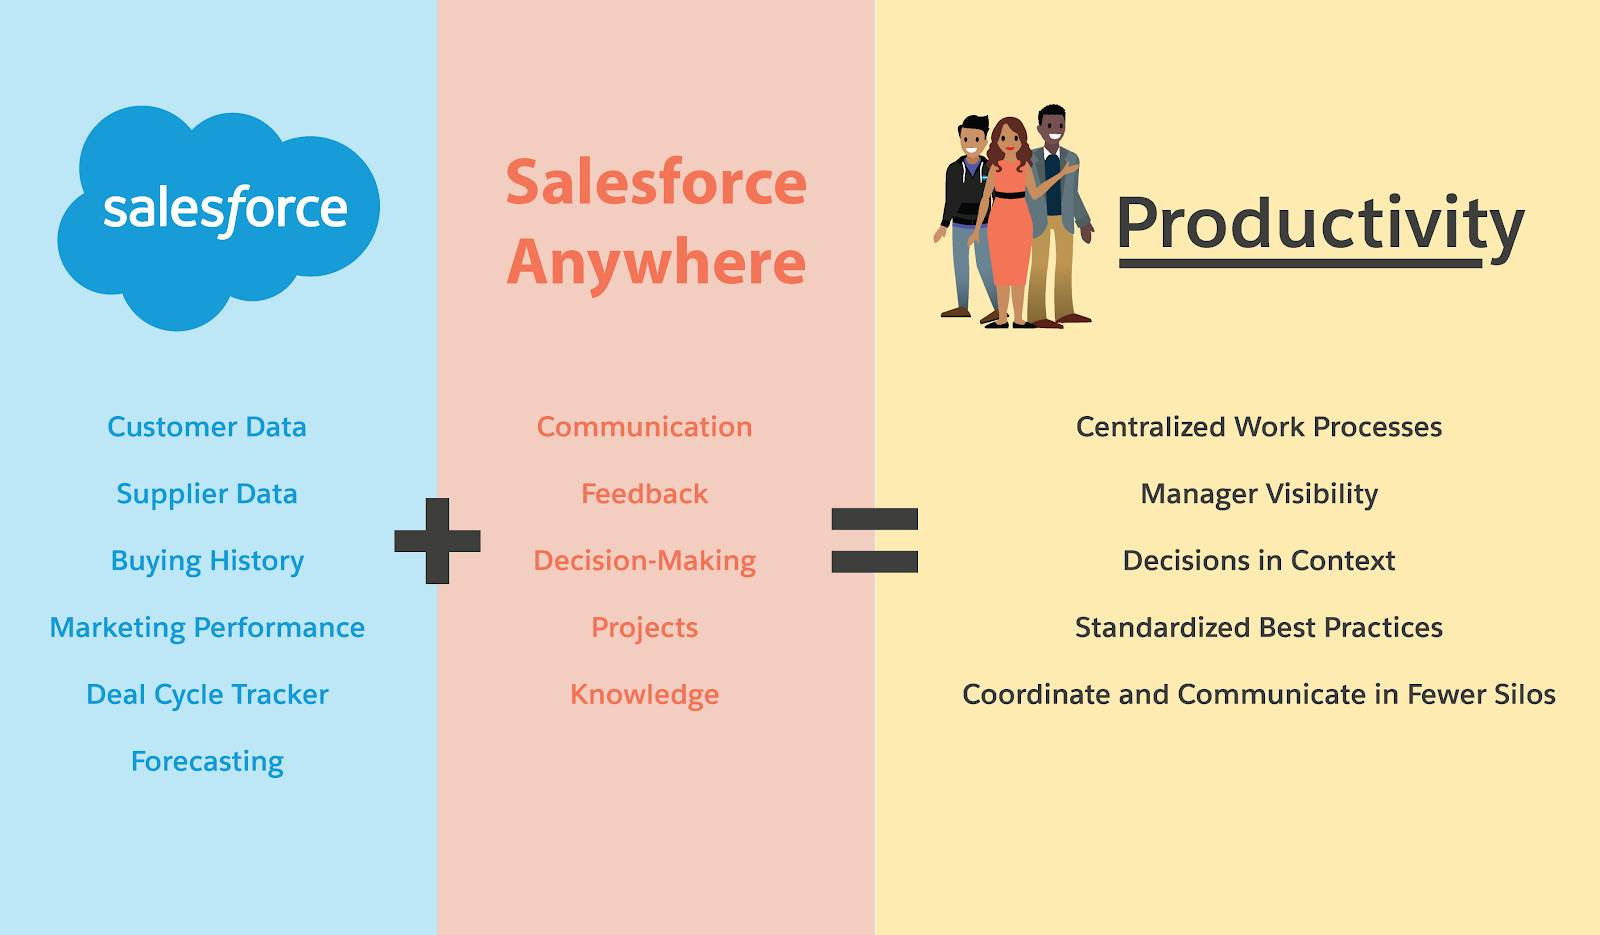 Diagram showing how the combination of Salesforce and Salesforce Anywhere technology empowers productivity through centralized work processes, manager visibility, decisions in context, standardized best practices, and fewer silos.